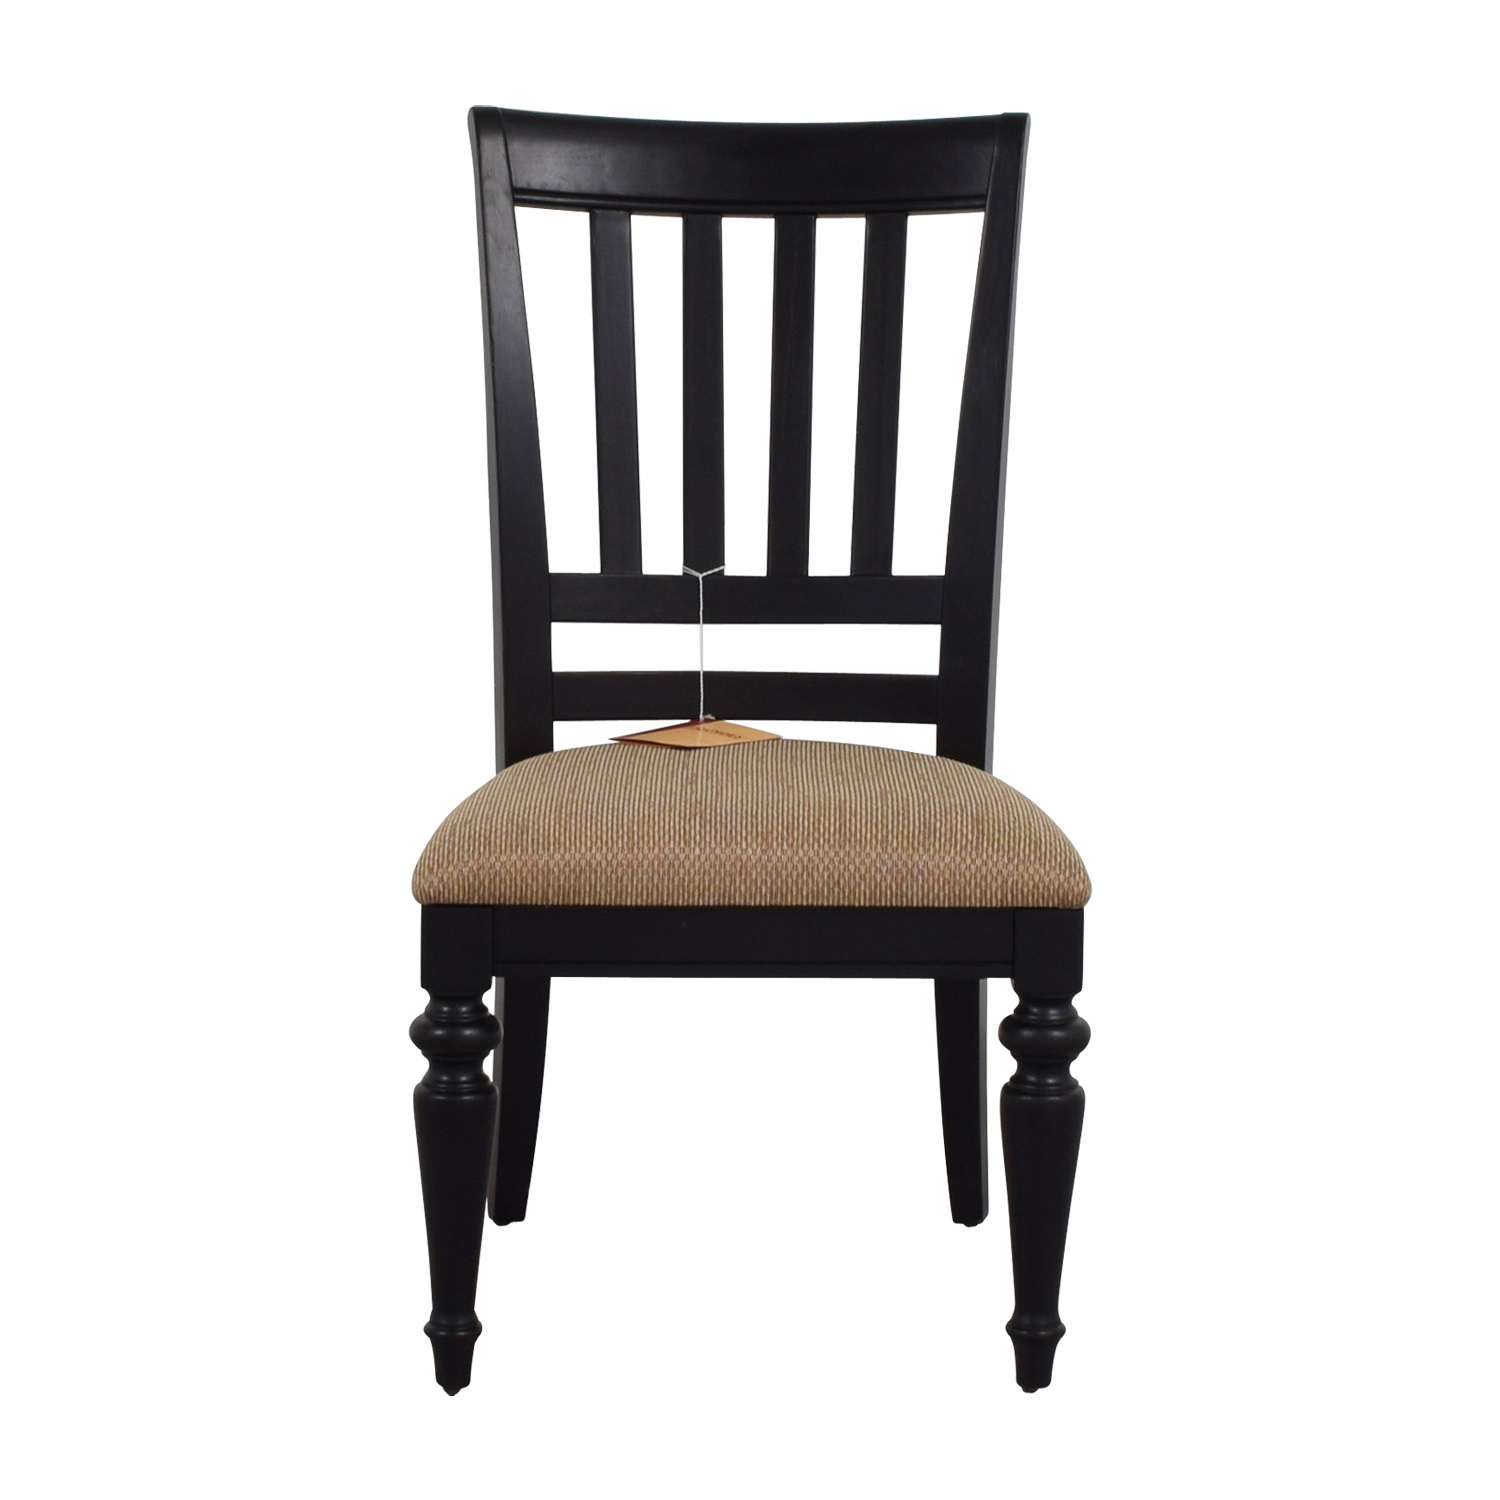 buy Poundex Furniture Poundex Furniture Black Chair with Padded Seat online